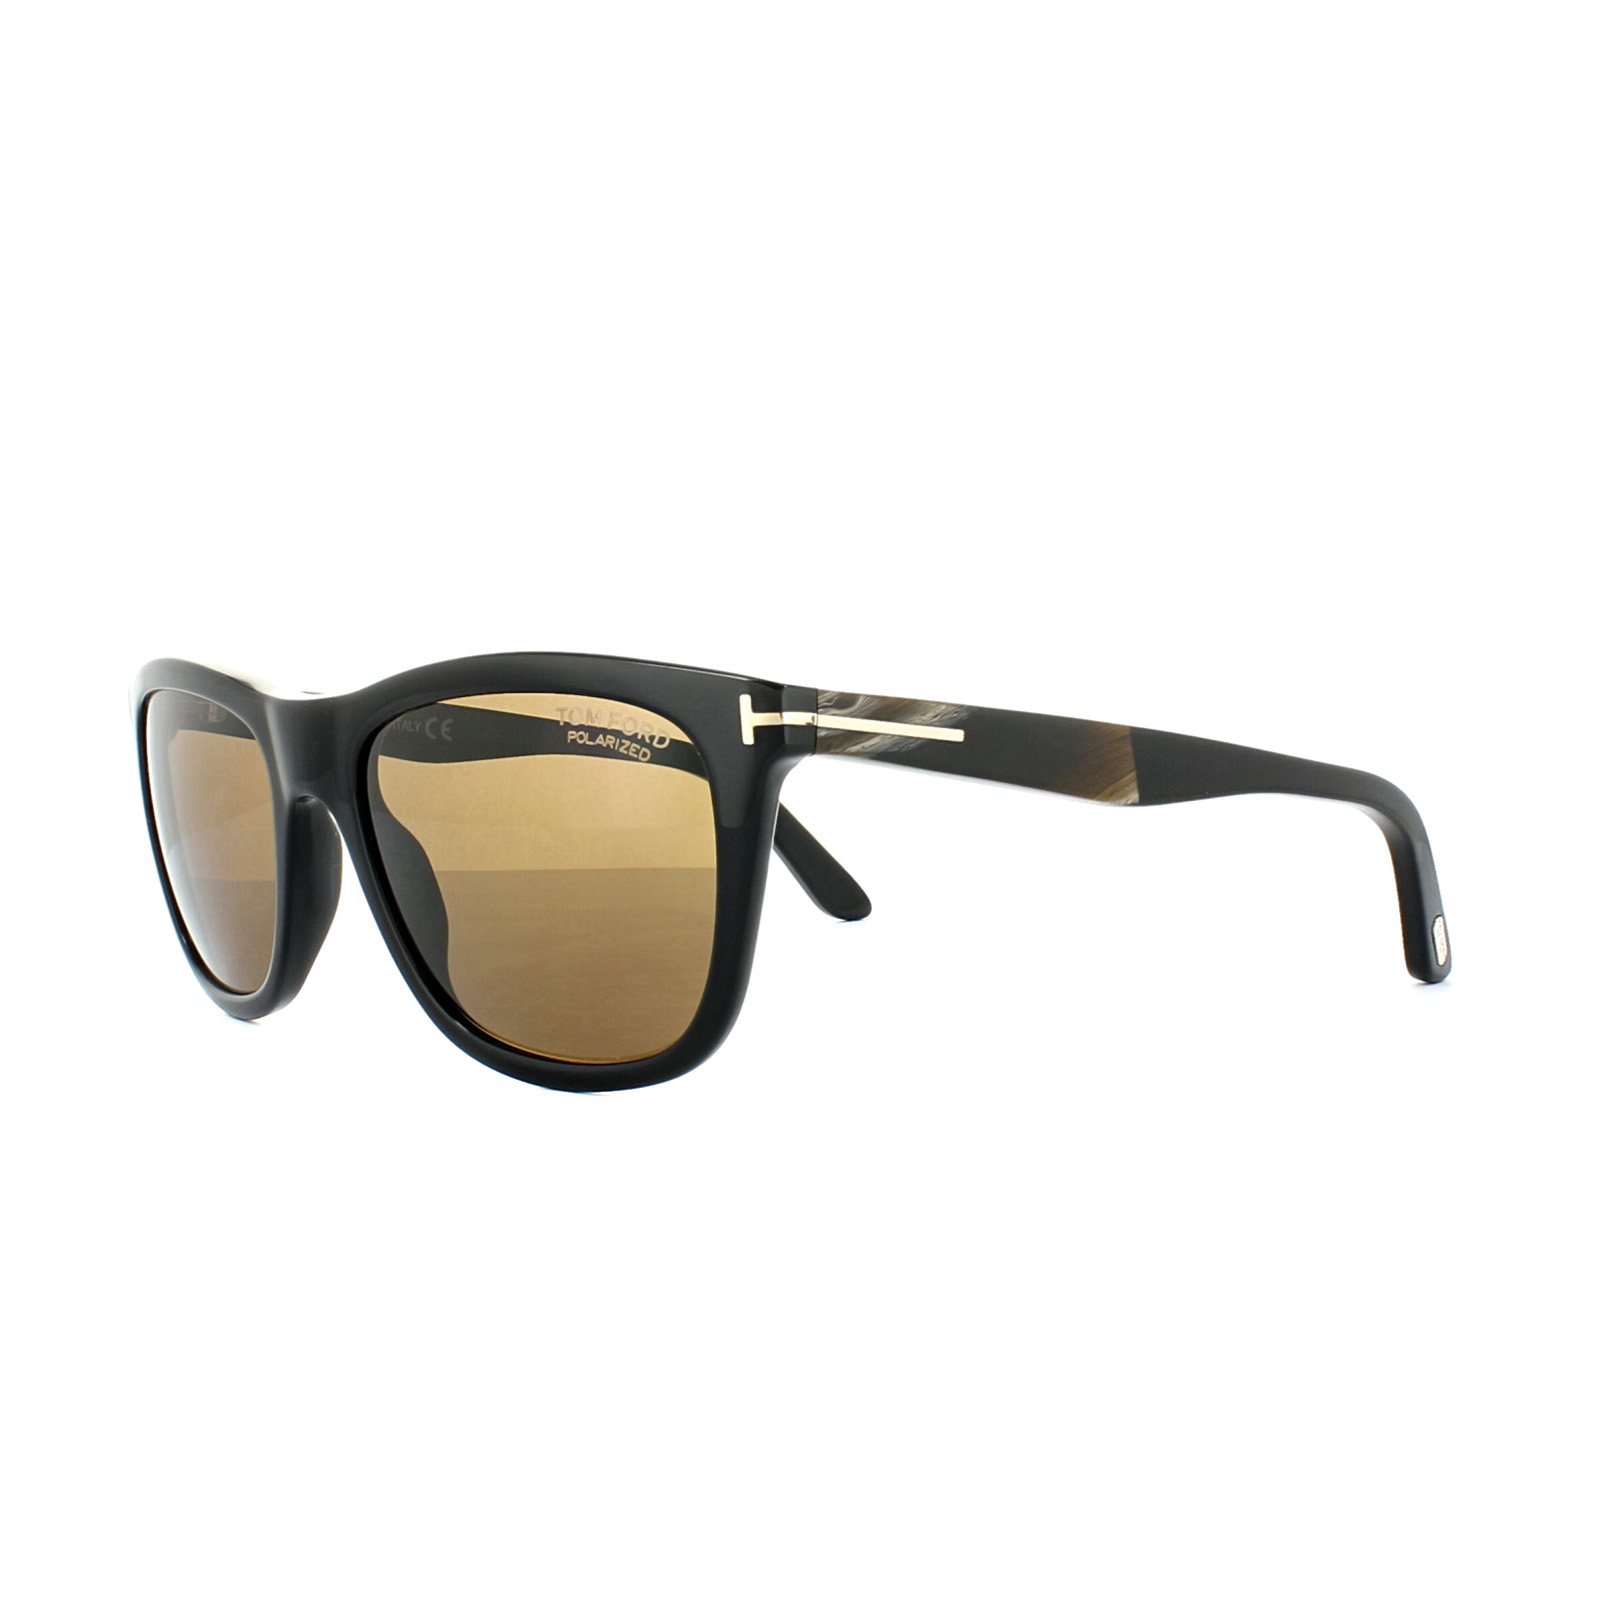 a84ec73049 Sentinel Tom Ford Sunglasses 0500 Andrew 01H Shiny Black Brown Polarized